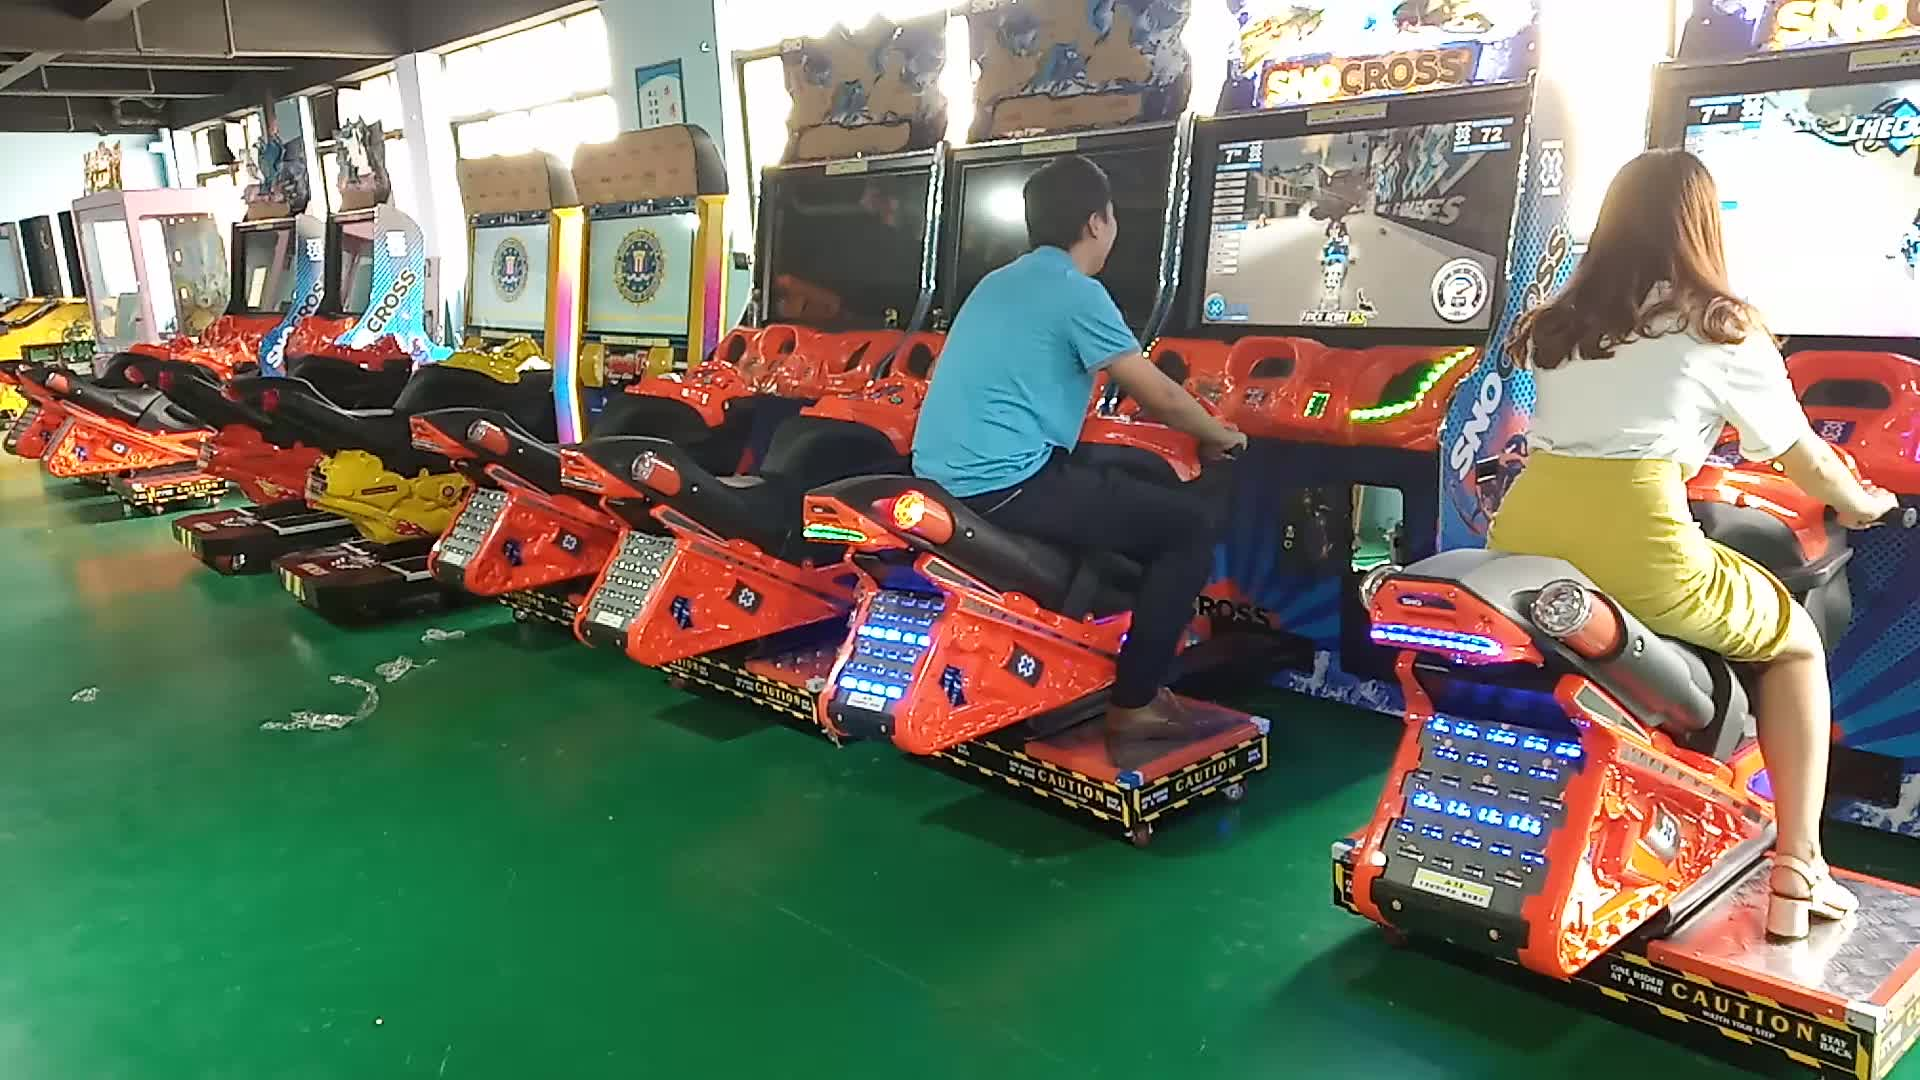 Snocross motor simulator ride coin operated arcade driving game machine